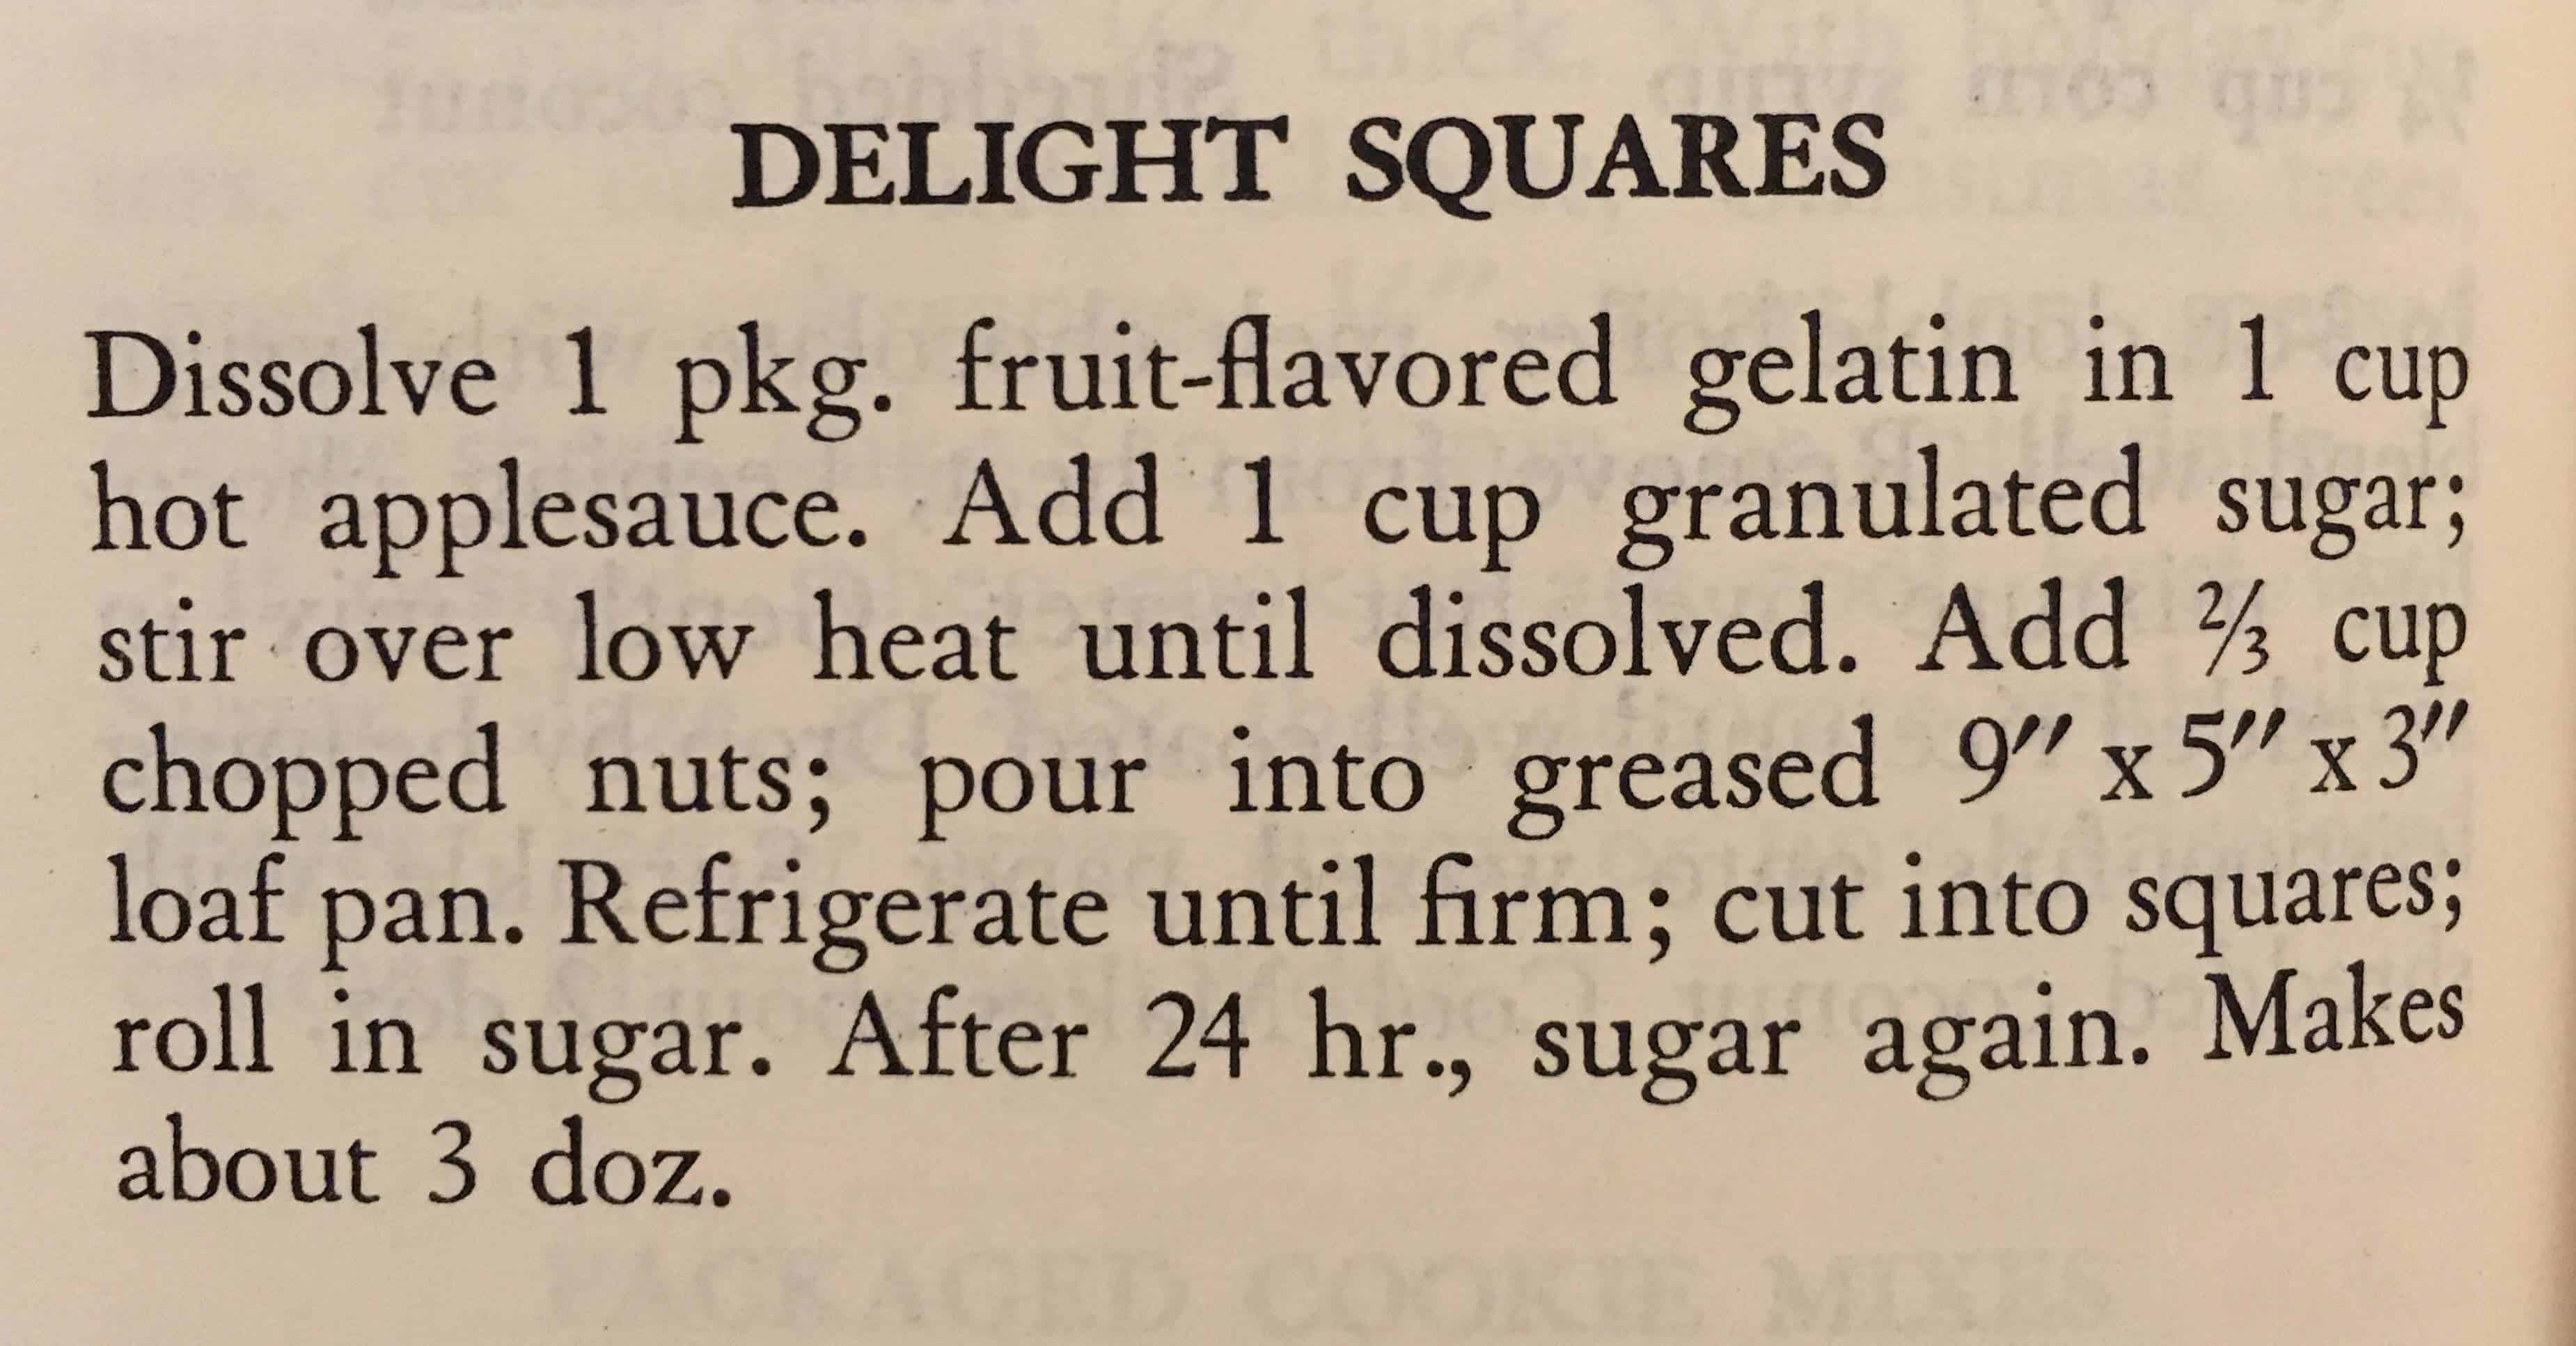 Delight Squares - This vintage recipe from the 1956 edition of the Good Housekeeping Cook Book is quite delicious! Check out cupofzest.com for my recreation!